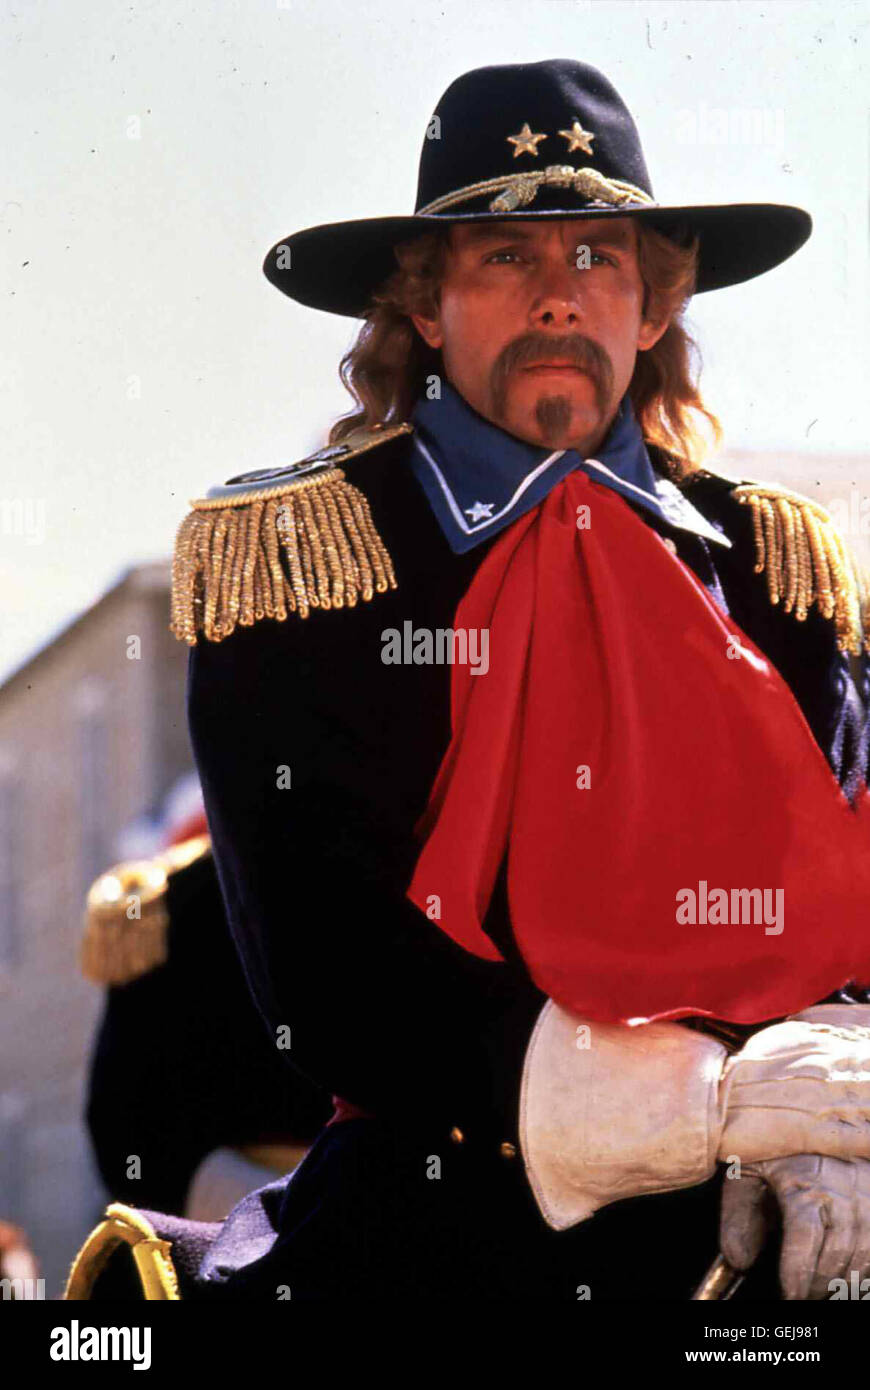 george armstrong custer stock photos george armstrong custer stock images alamy. Black Bedroom Furniture Sets. Home Design Ideas